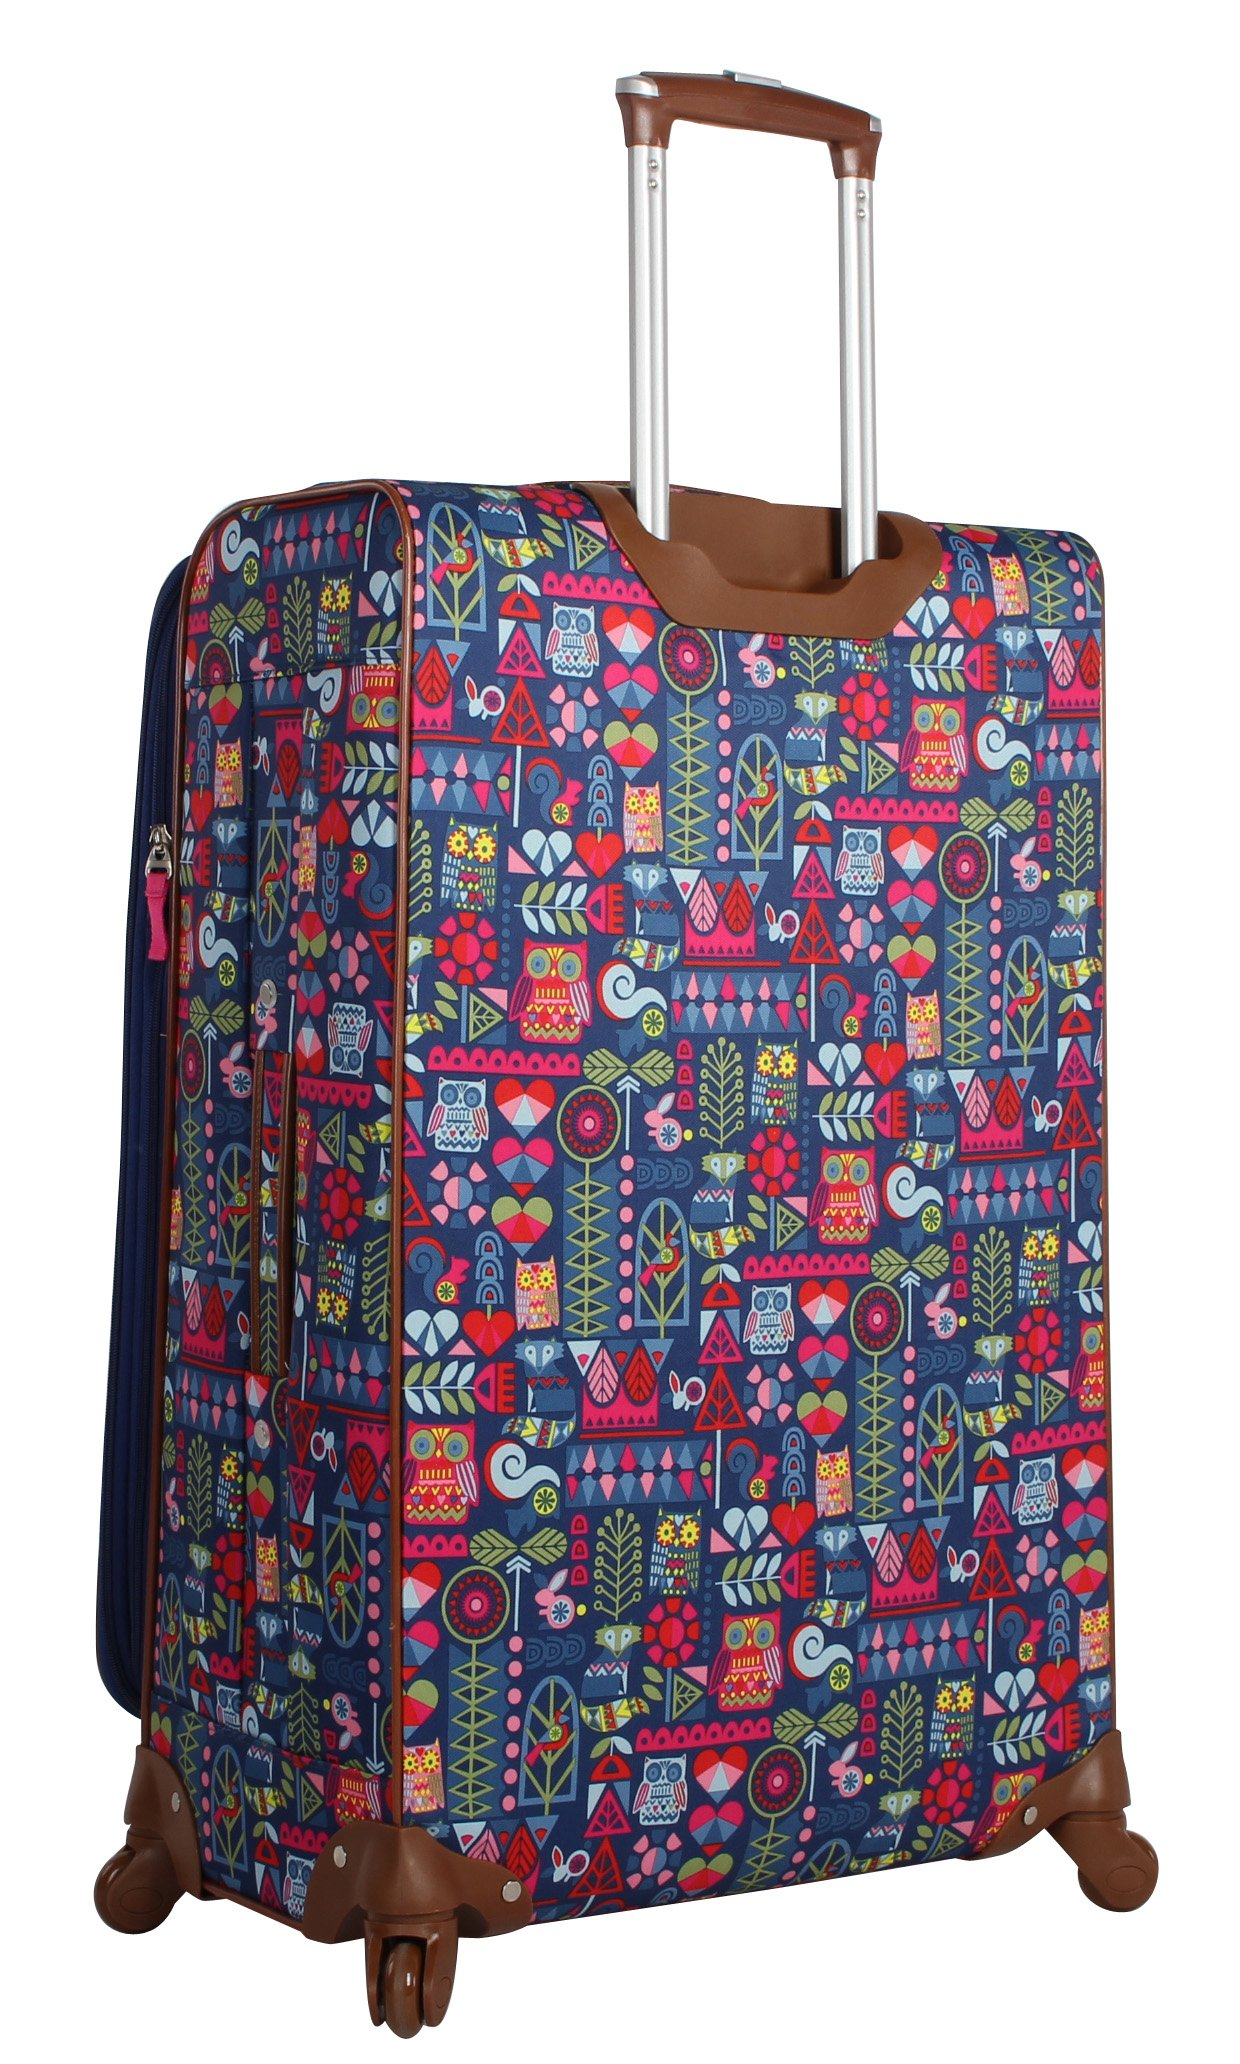 Lily Bloom Luggage 3 Piece Softside Spinner Suitcase Set Collection (Geo Critter) by Lily Bloom (Image #3)